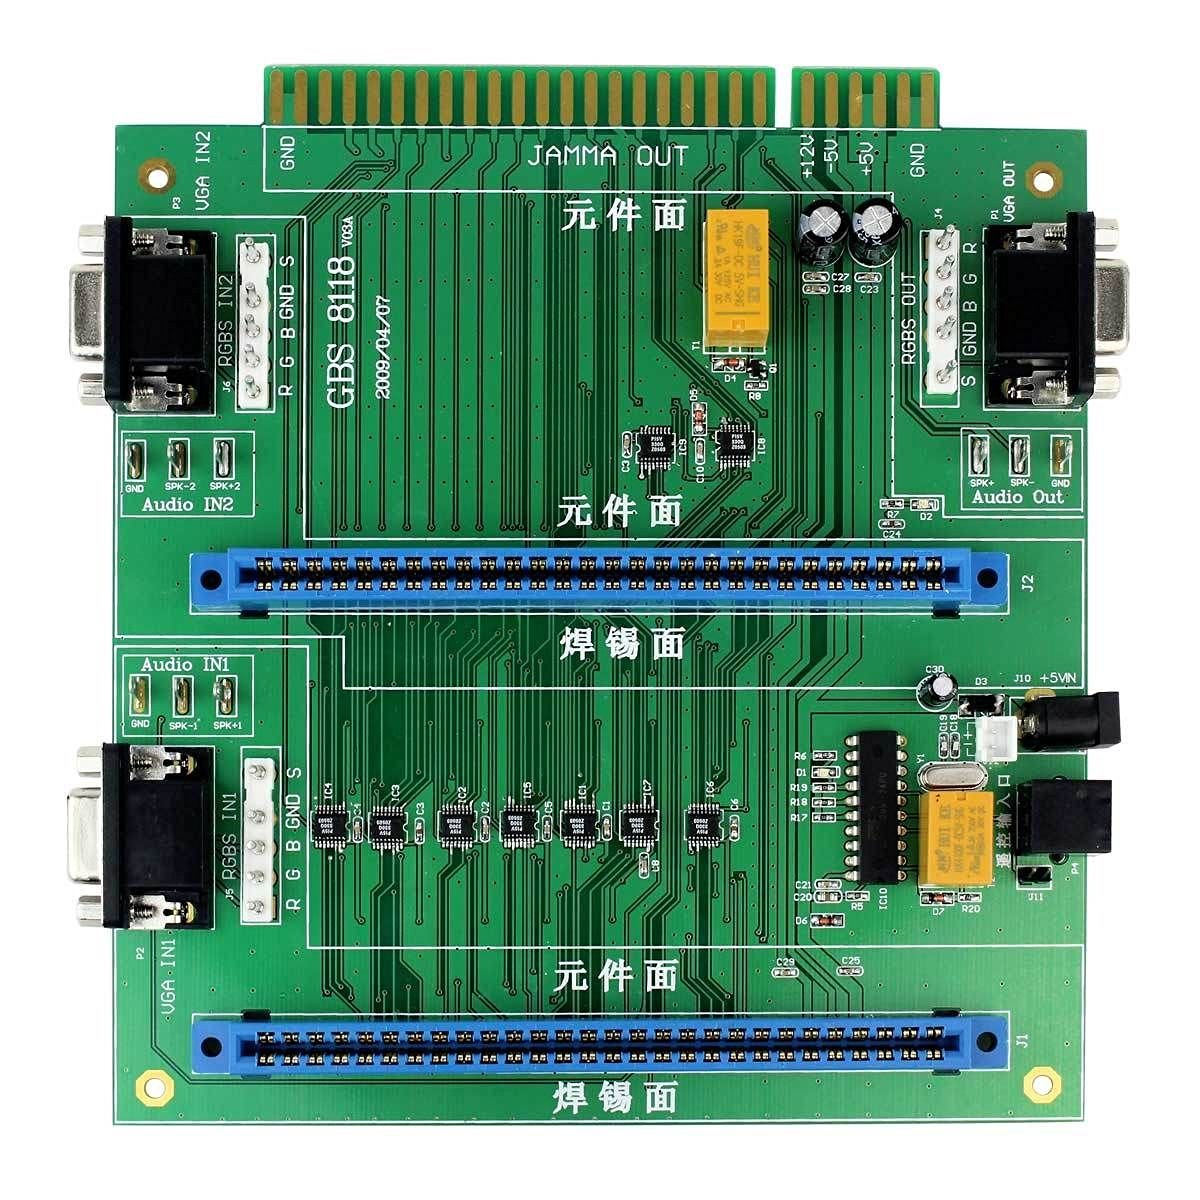 Cheap Pc 2 Jamma, find Pc 2 Jamma deals on line at Alibaba.com on